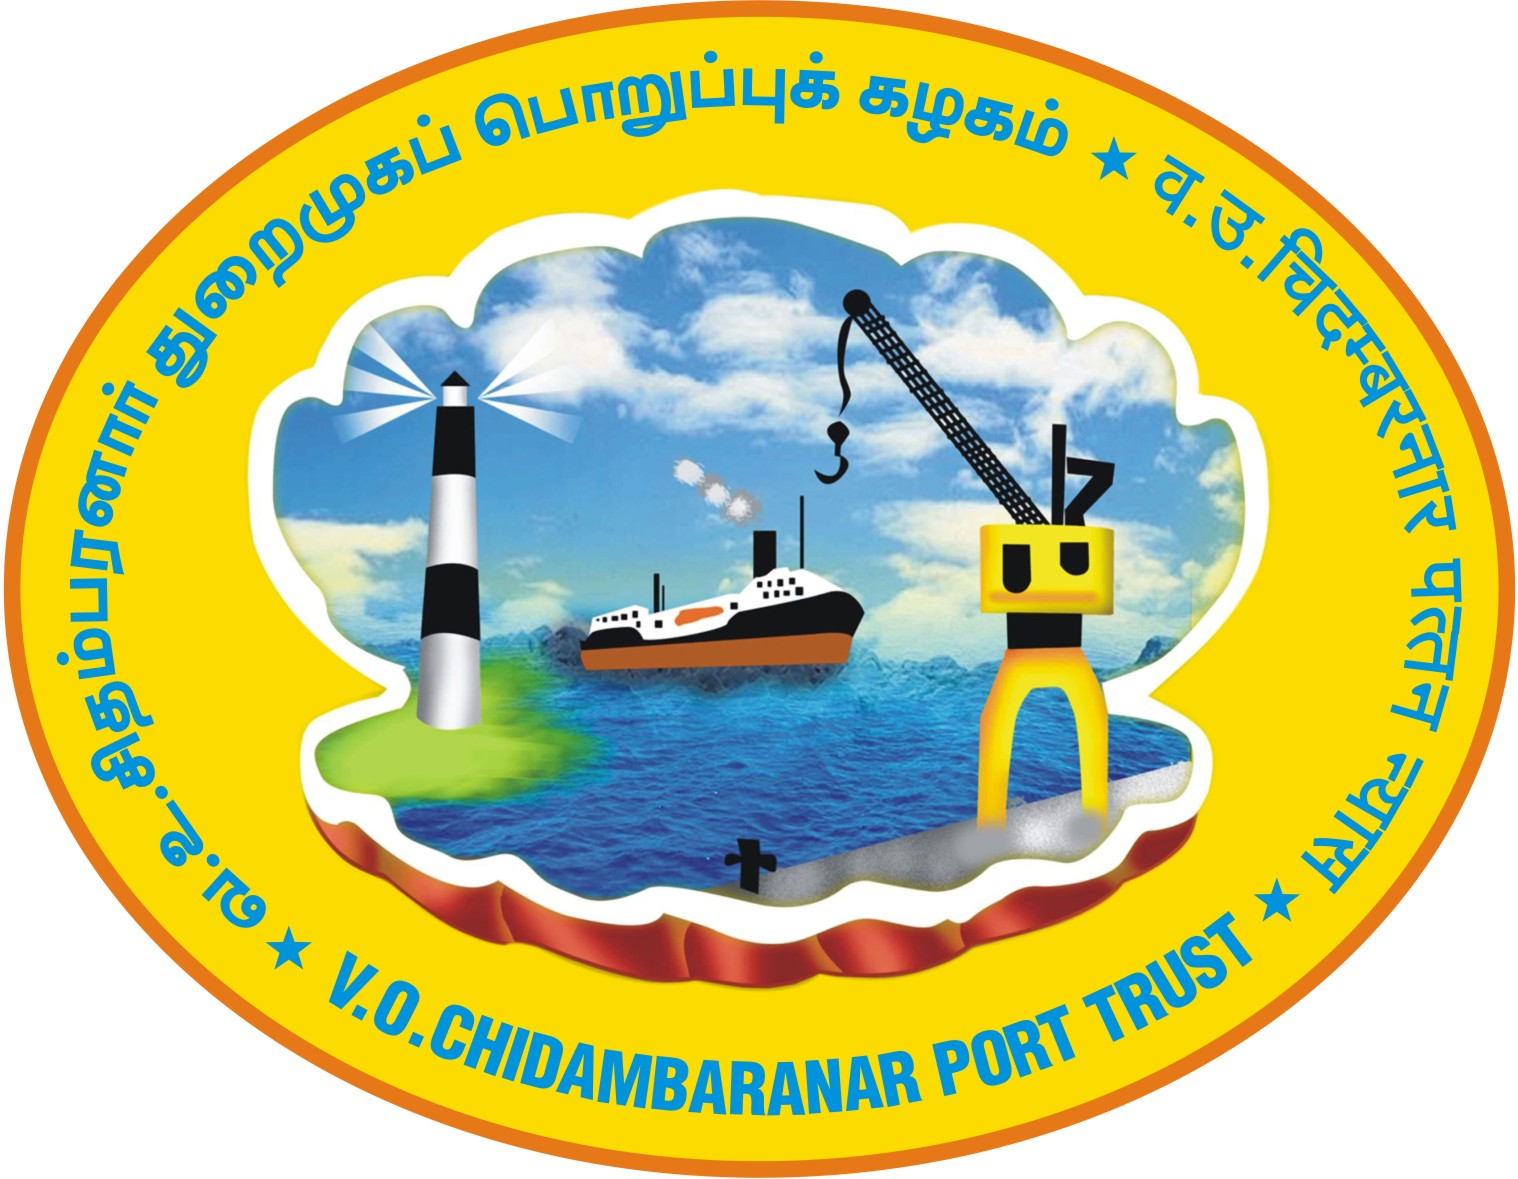 VOC Port Trust announces 50% concession on VRC for mainline vessels calling VOCPT